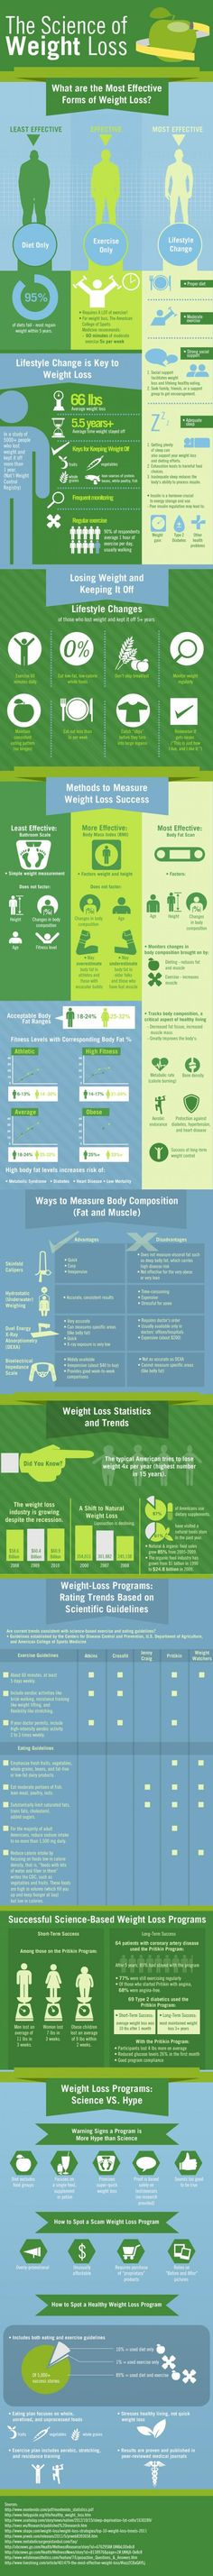 The science of weight loss (Infographic) | Sciencedump